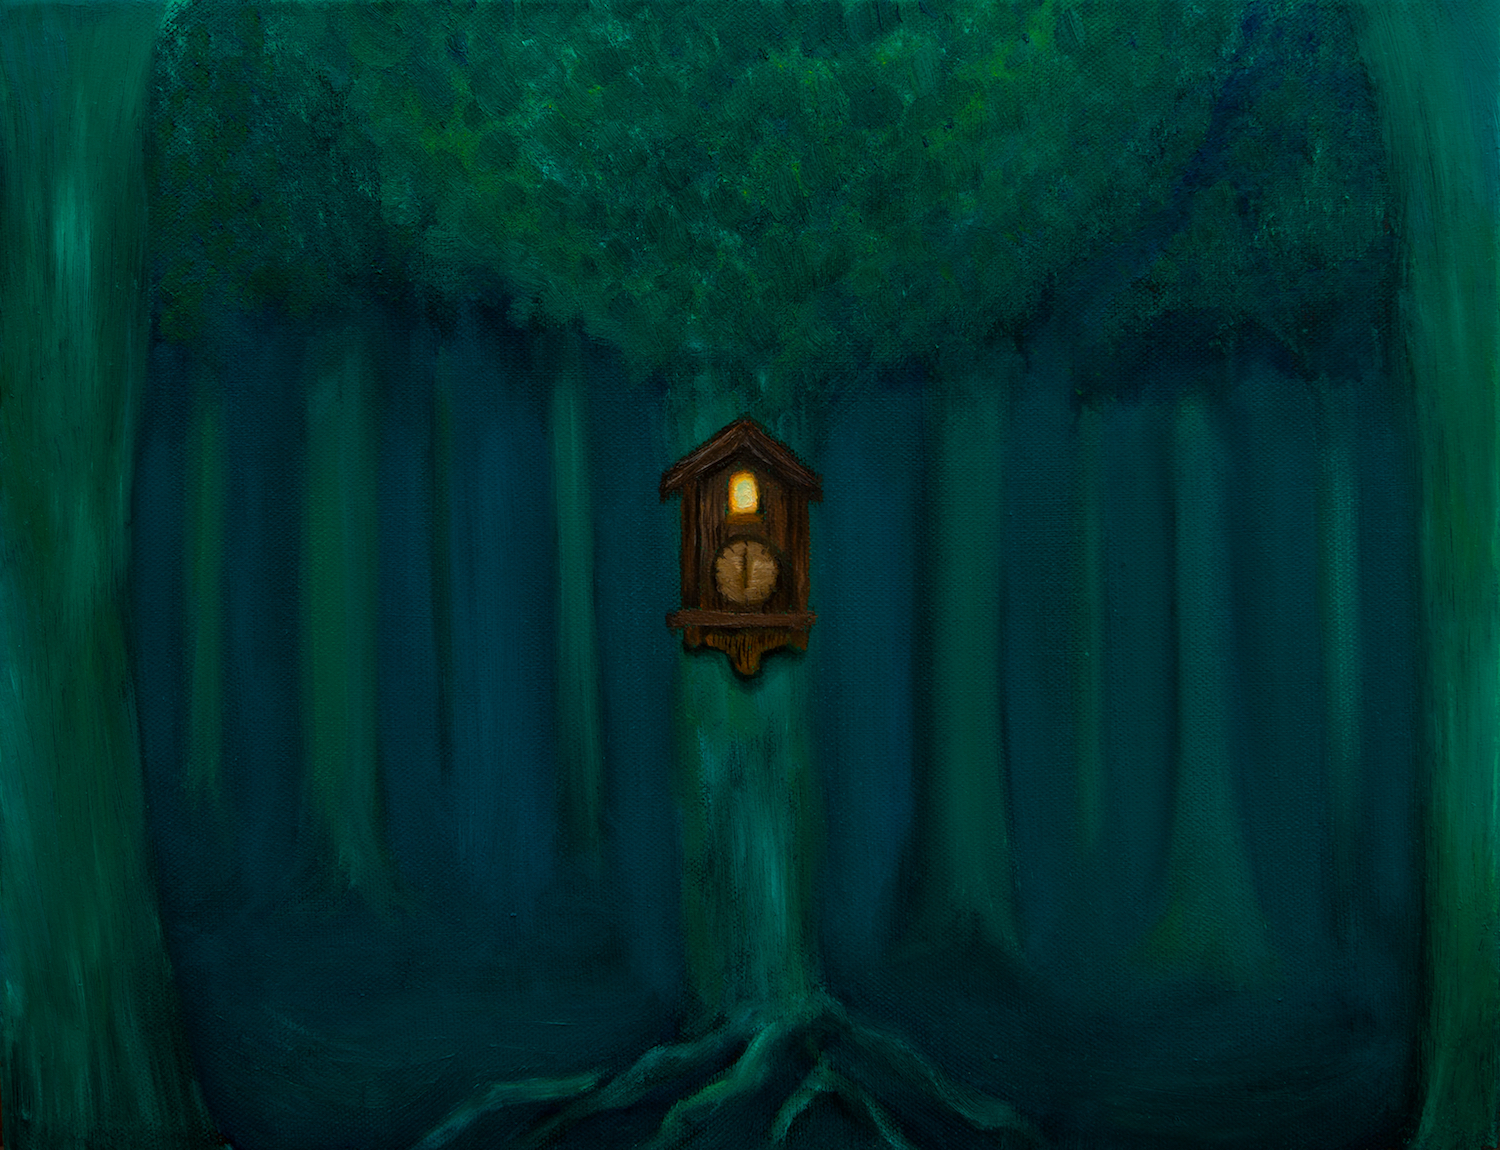 09_The Cuckoo in the Depths of the Woods.jpg